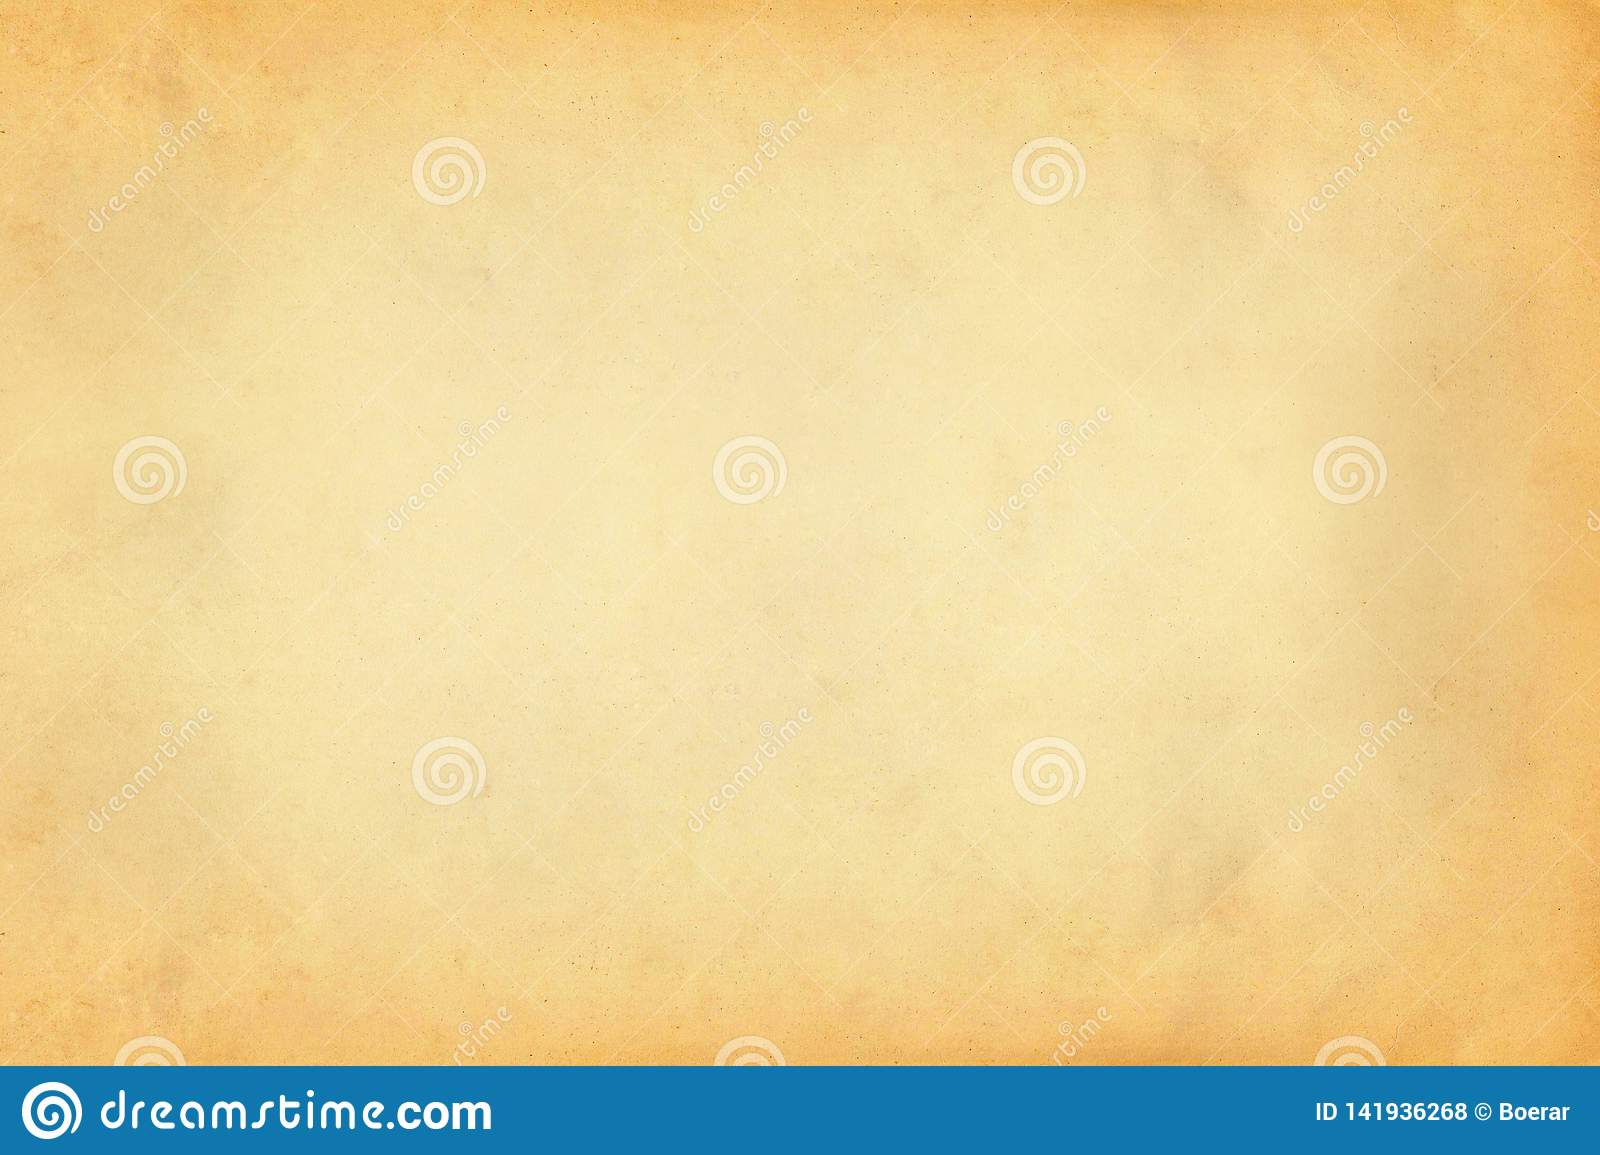 Vintage old yellow and brown paper parchment texture background